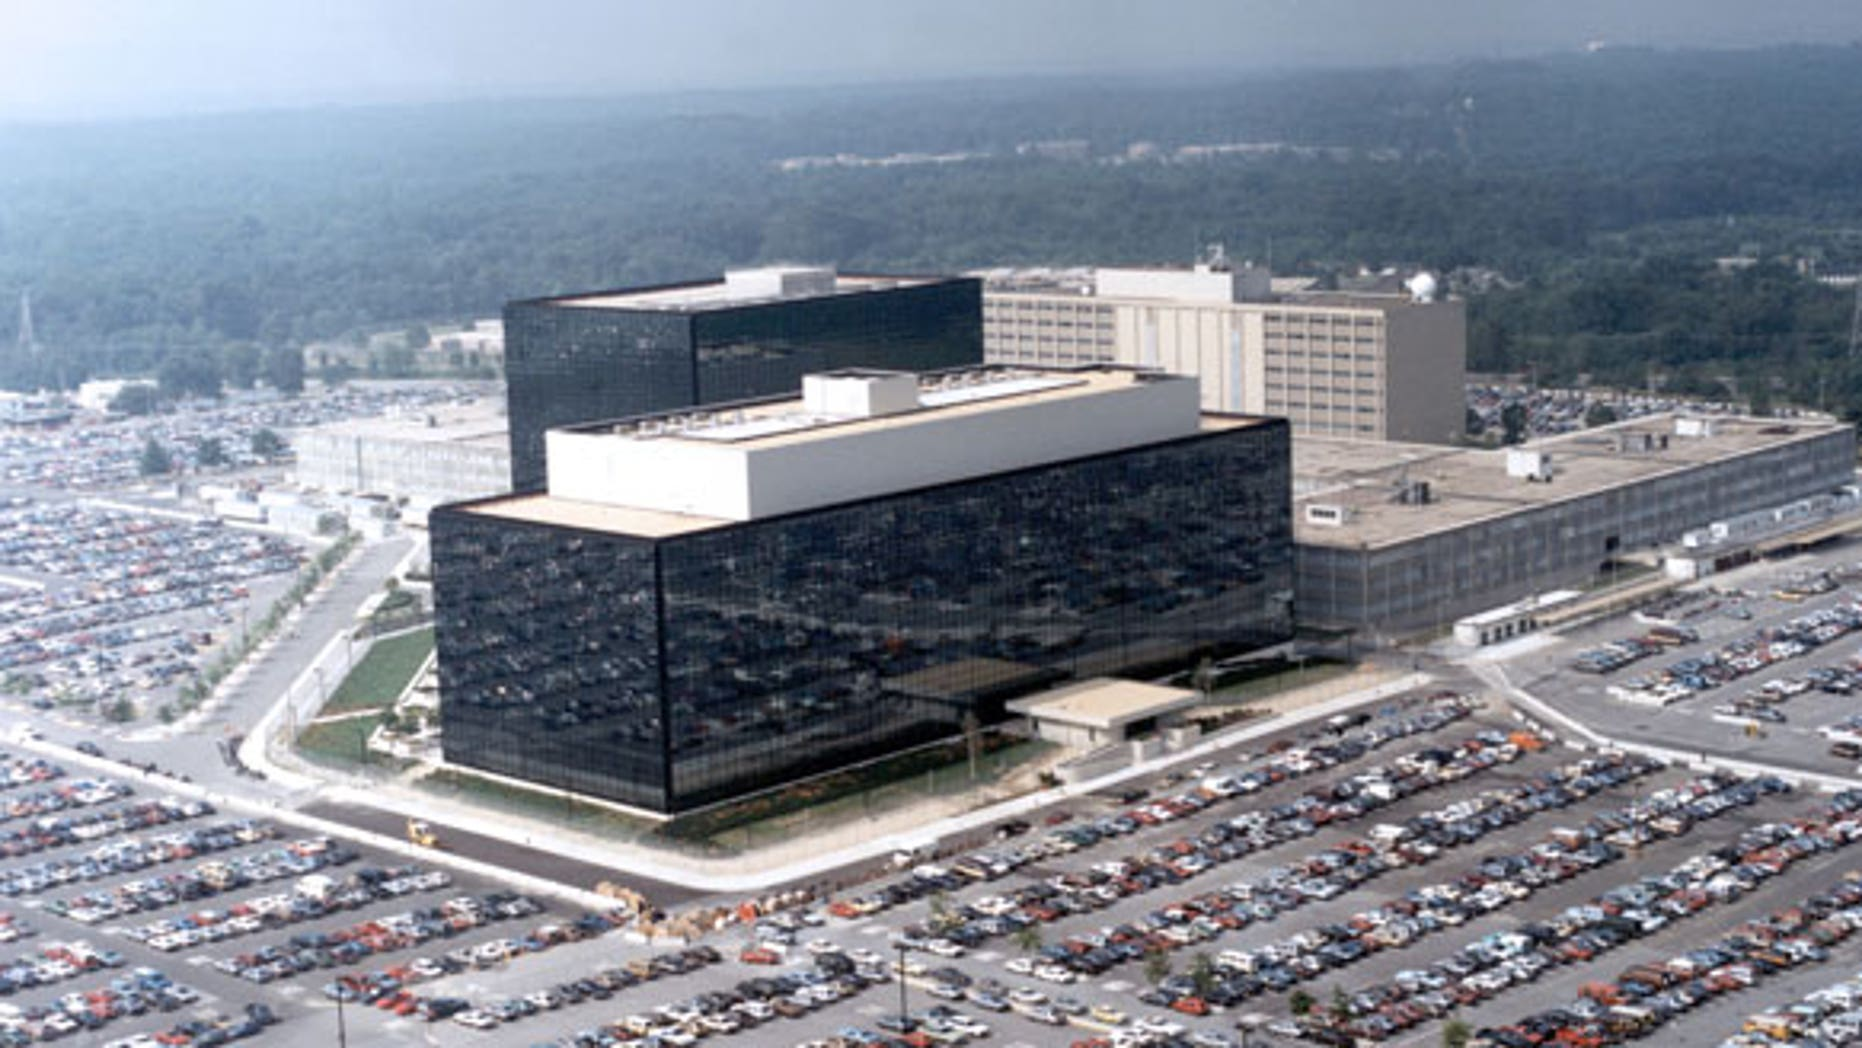 The NSA building.